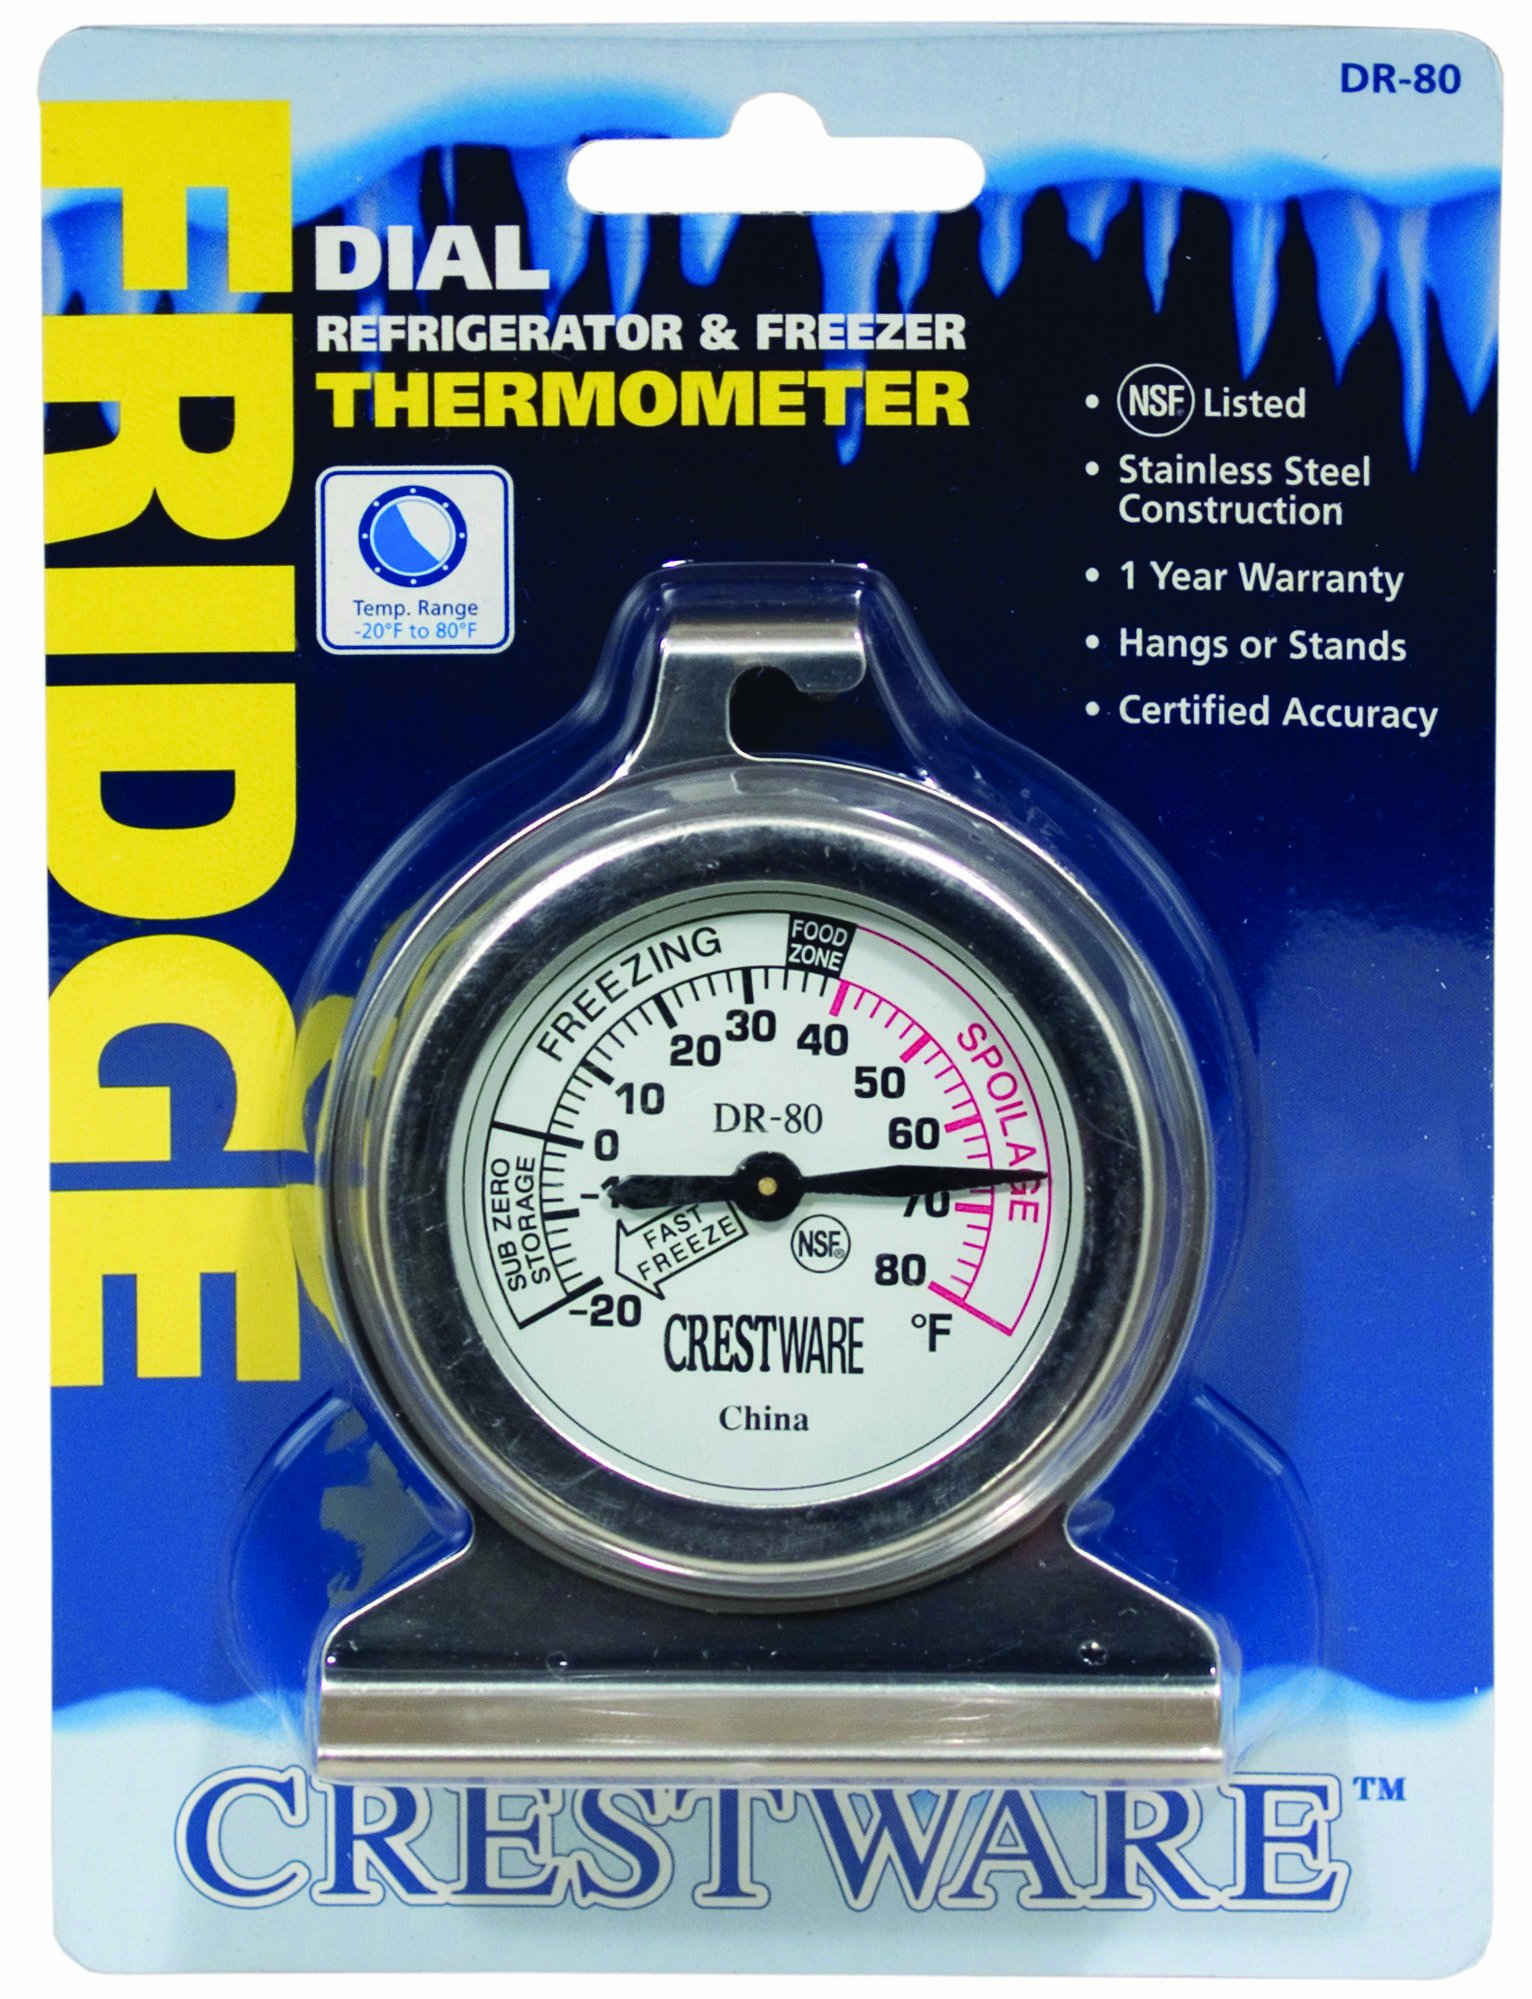 Crestware Dial Refrigerator/Freezer Thermometer